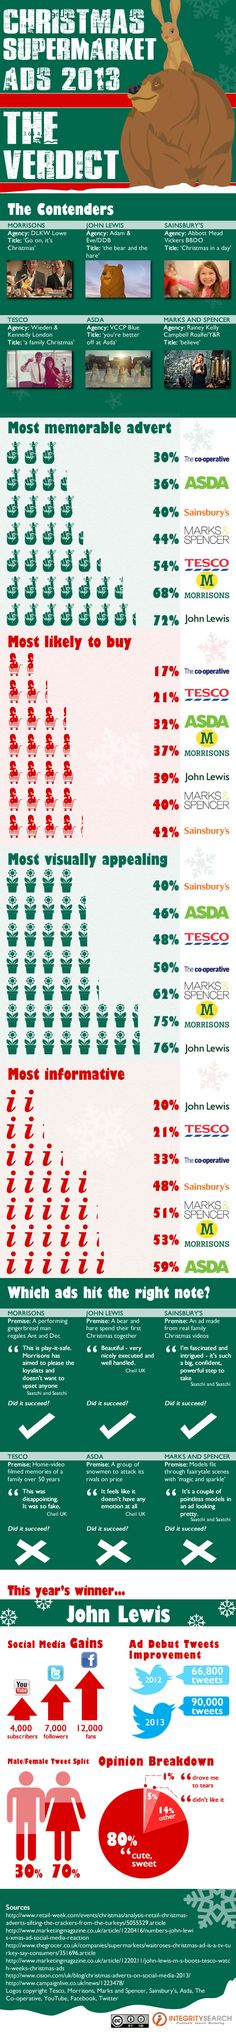 Christmas xmas ads 2013. Someone needs to pit the US ads against the UK ones. Wonder who'd win?